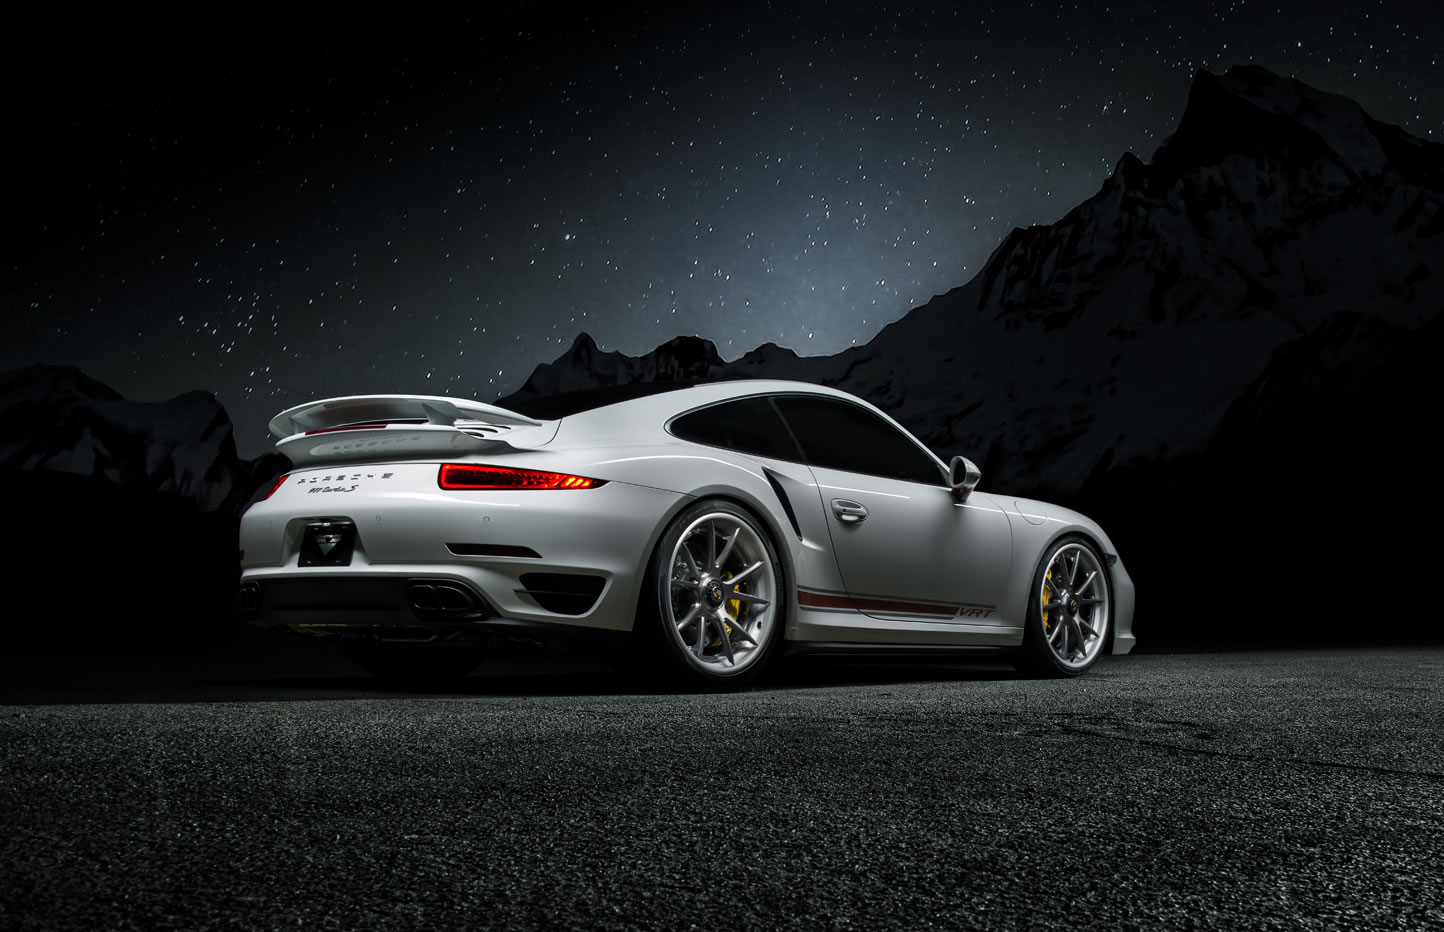 2015 porsche 911 turbo s vse 004 by vorsteiner photos specs and review rs. Black Bedroom Furniture Sets. Home Design Ideas